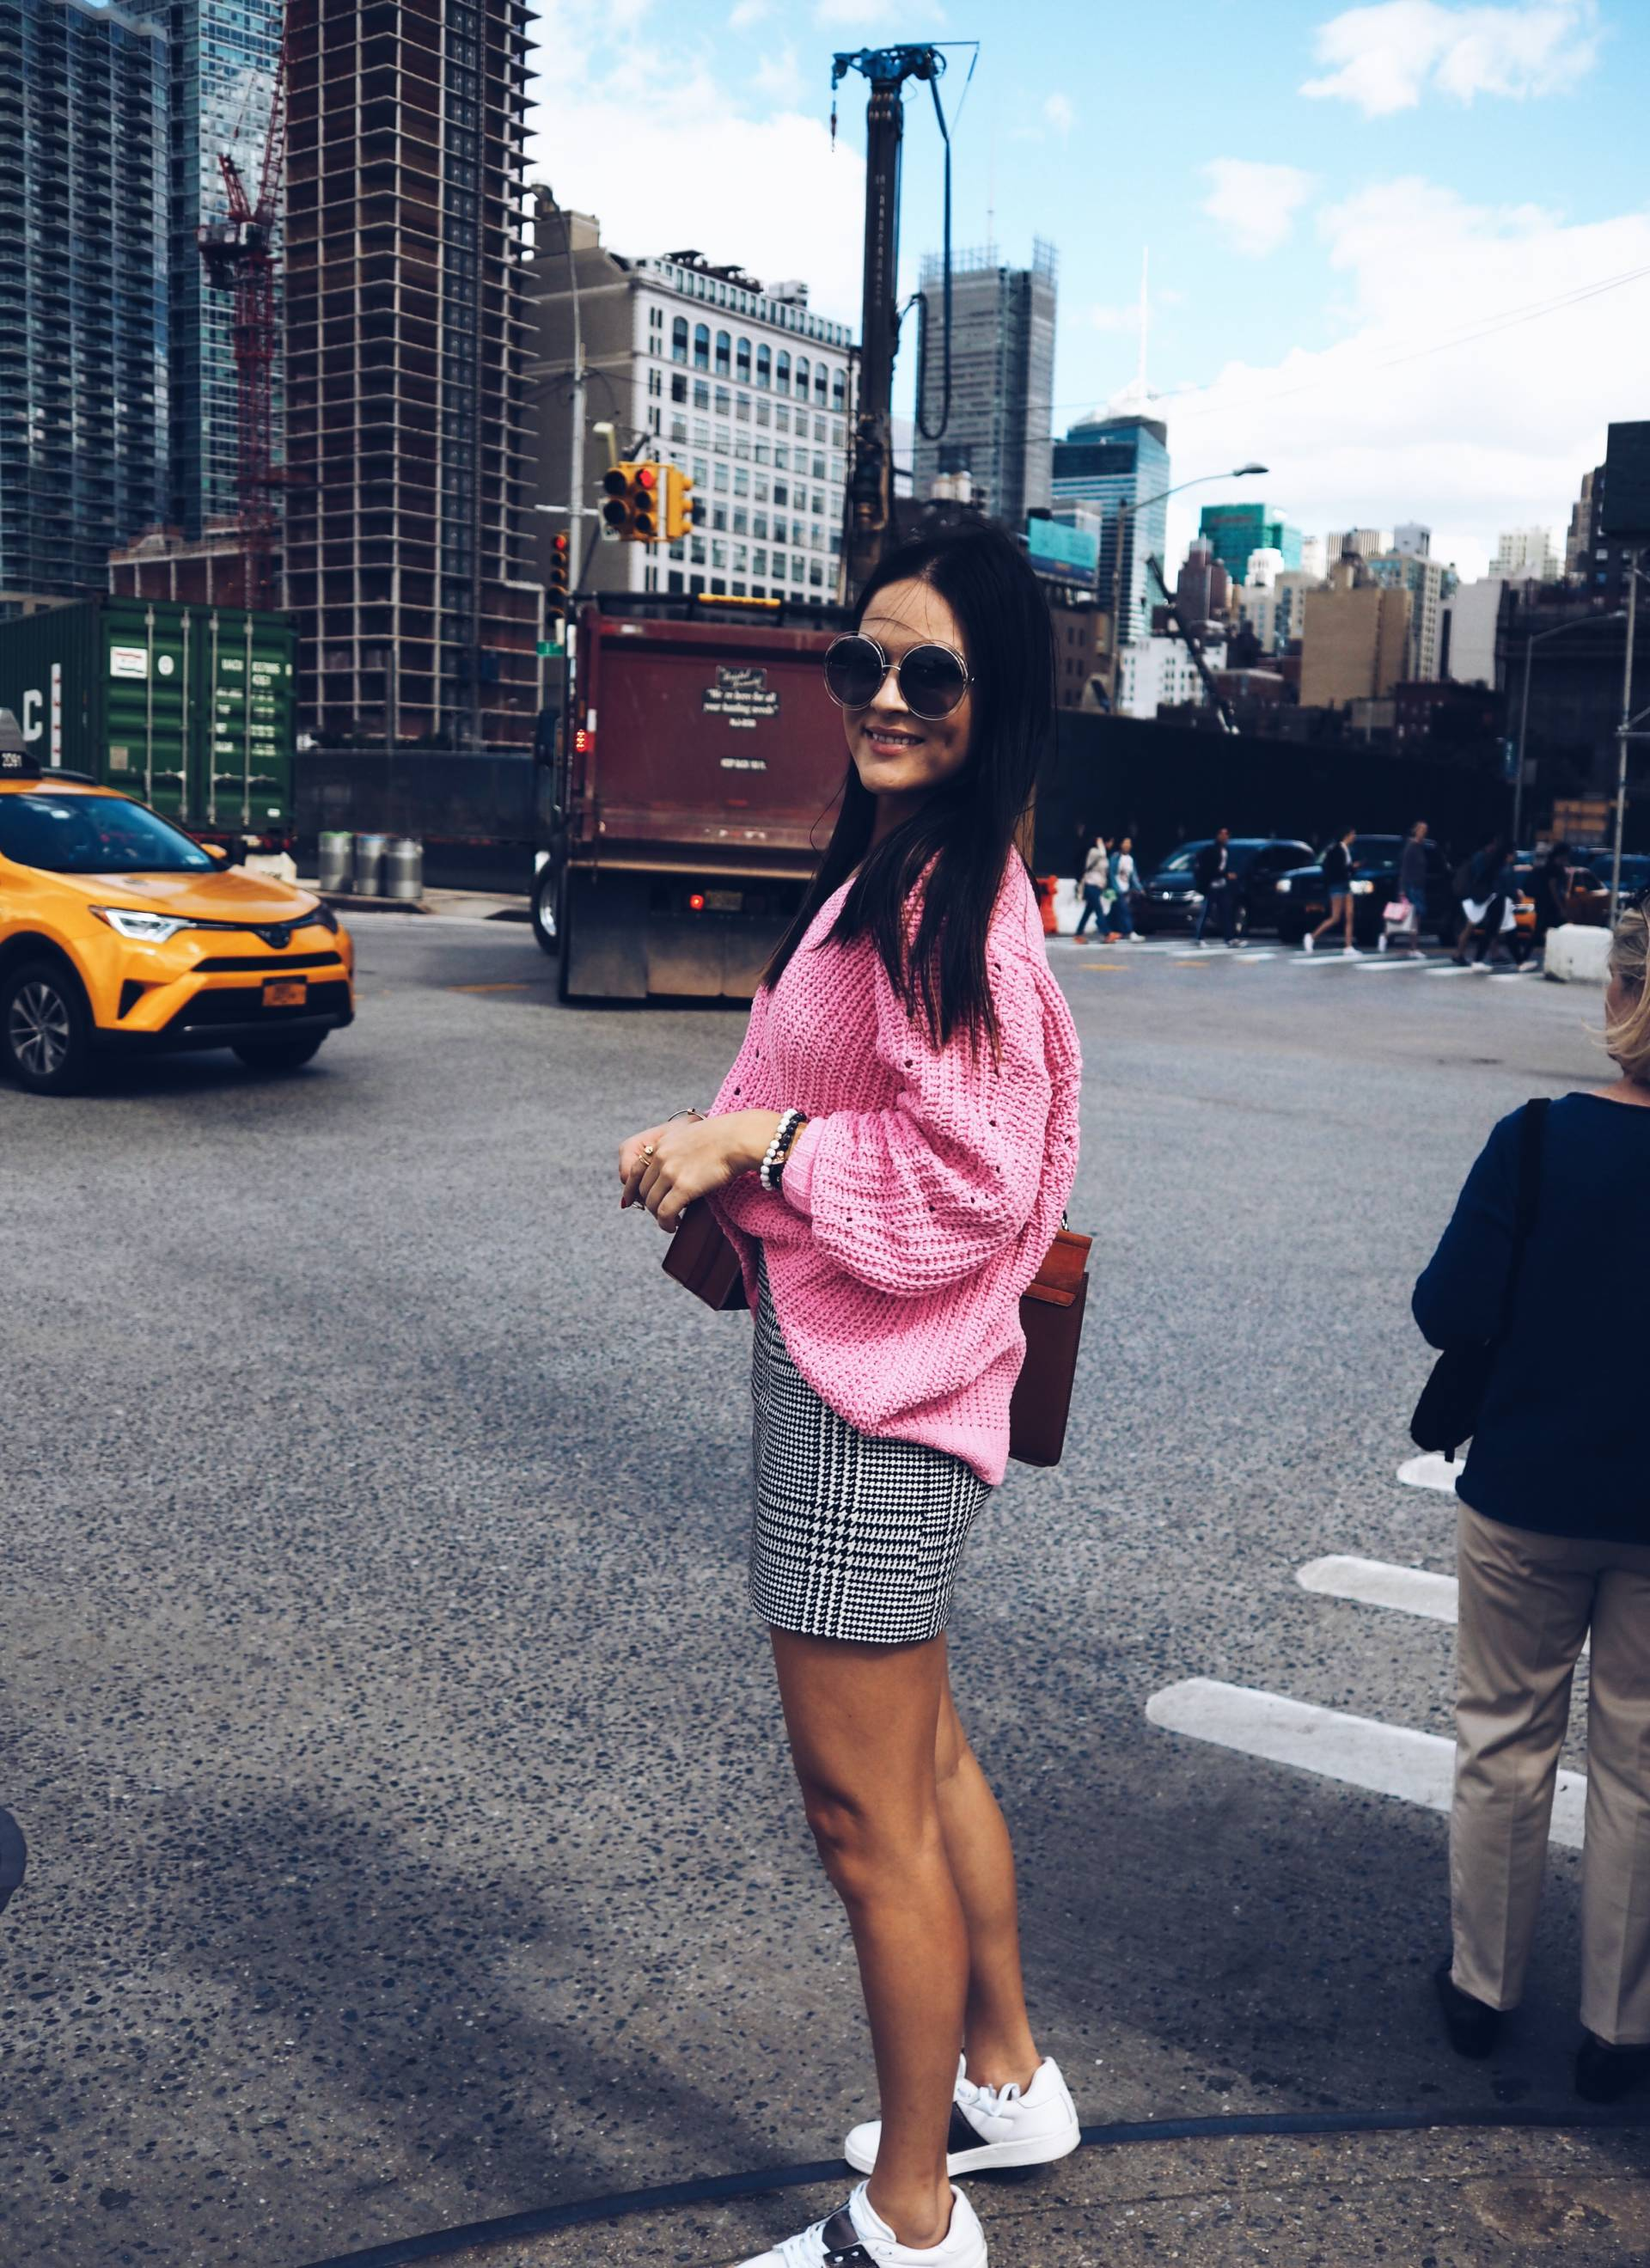 NEW-YORK-FASHION-WEEK-2017-LAFOTKA-TRAVELS-BLOGGER